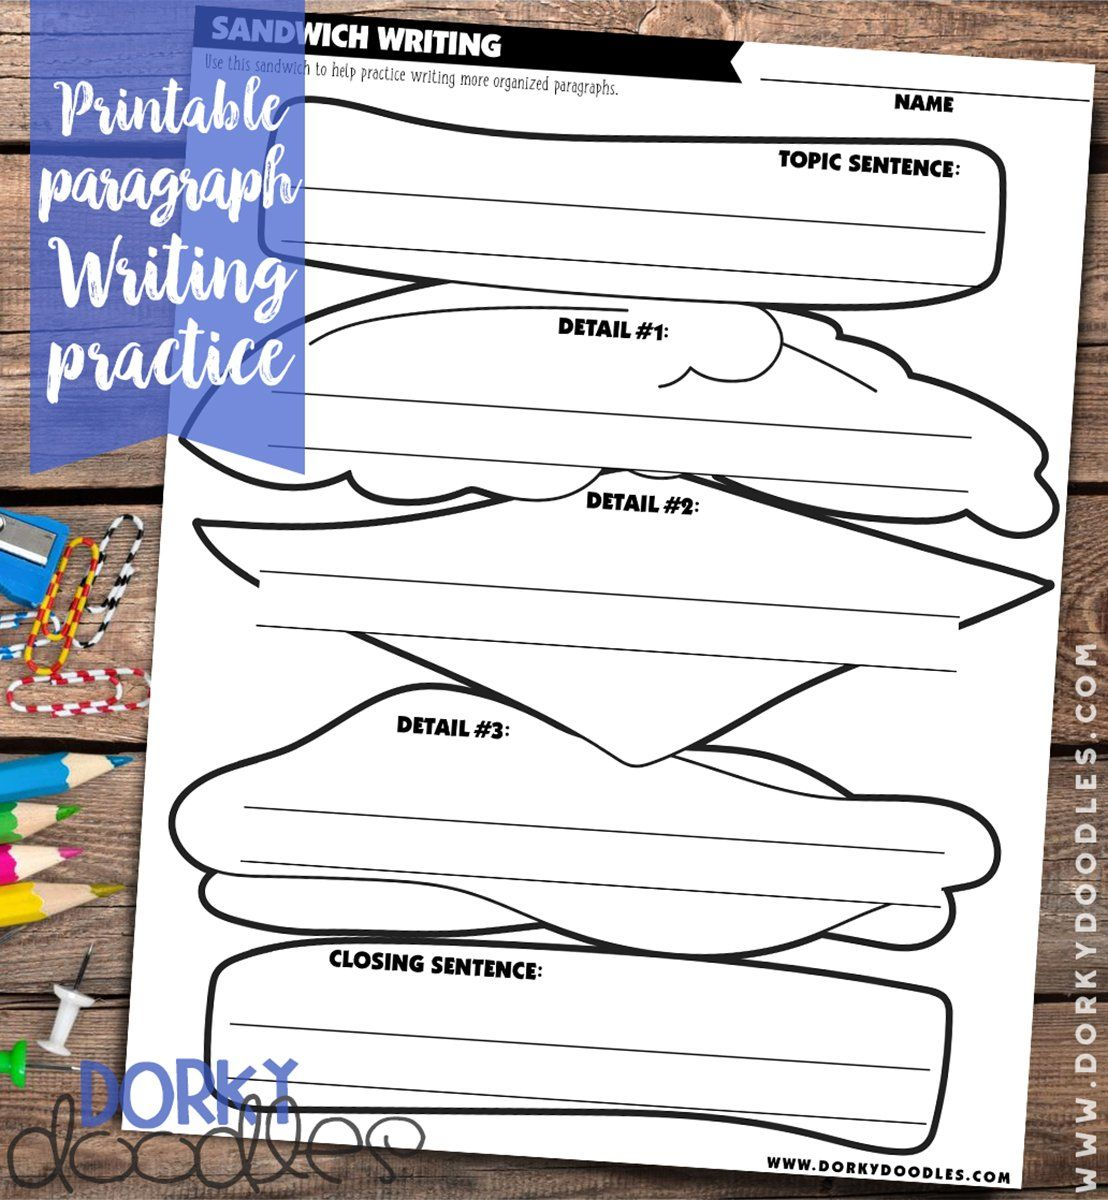 Paragraph Structure Writing Practice